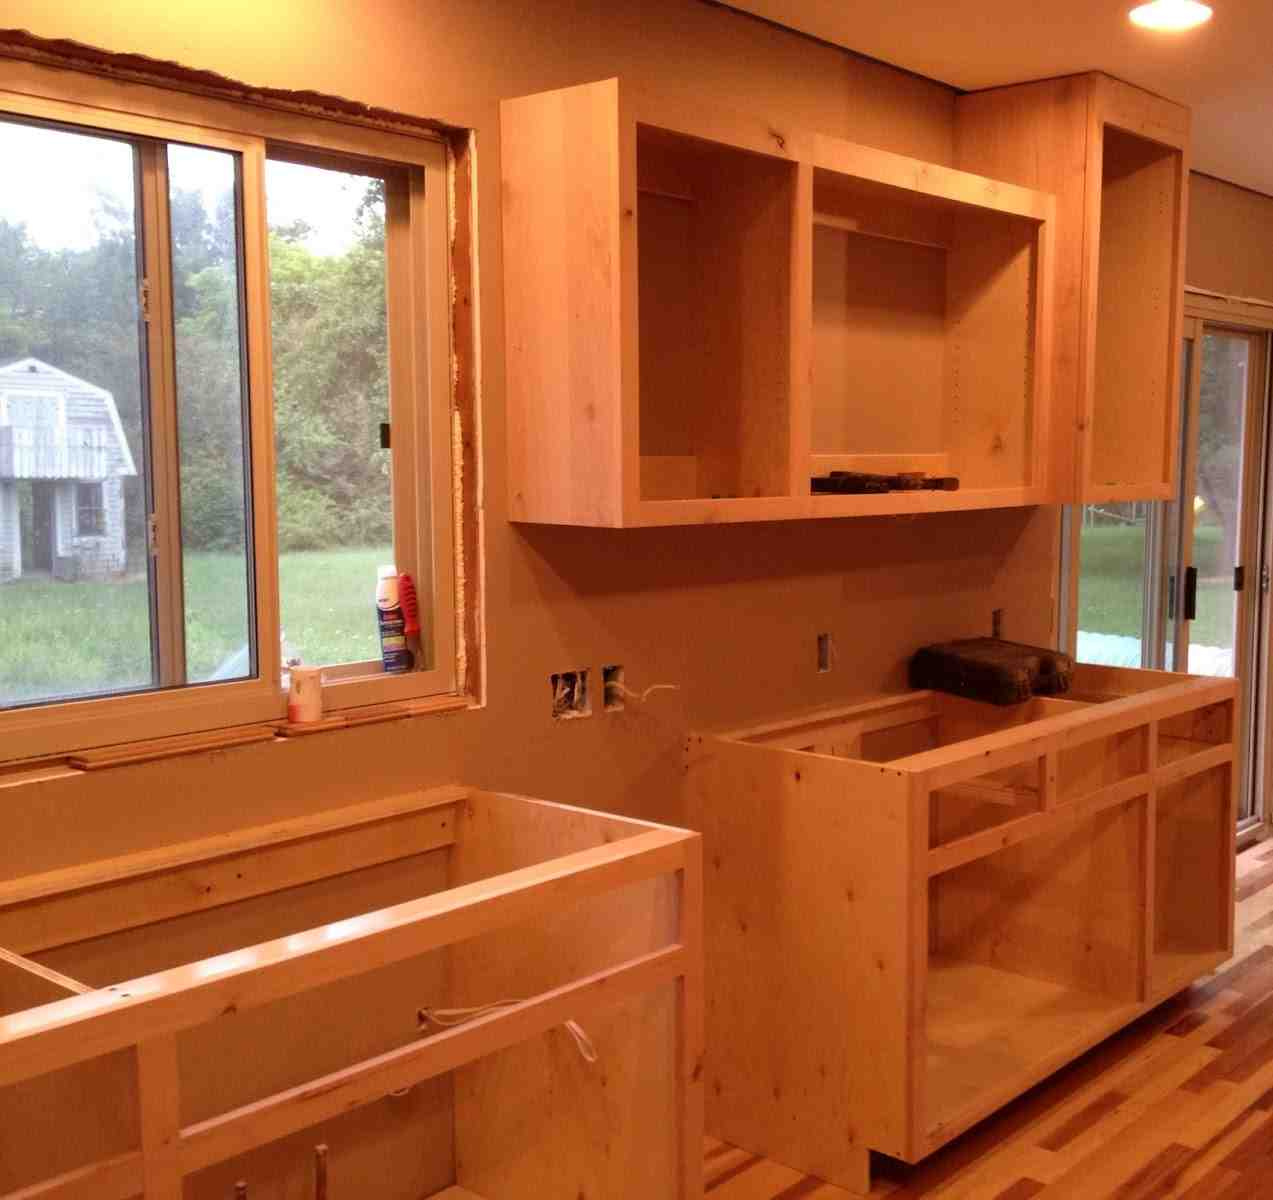 Kitchen Cabinet Drawings: Kitchen Base Cabinet Plans